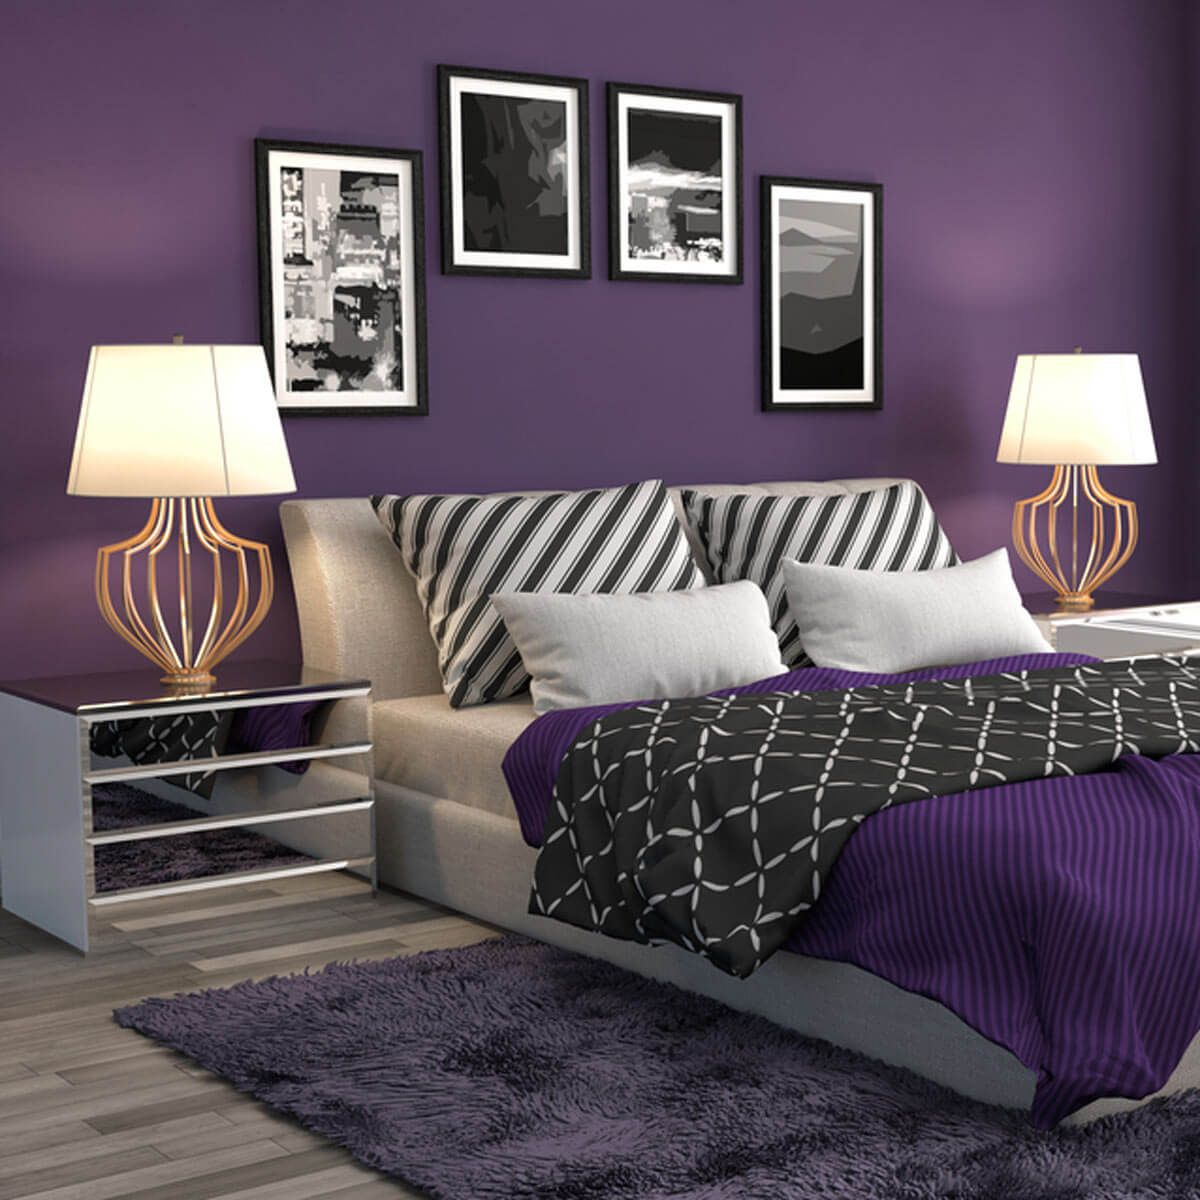 100 Bedroom Decorating Ideas Designs: 10 Ideas For Using Pantone's Ultra-Violet 2018 Color Of